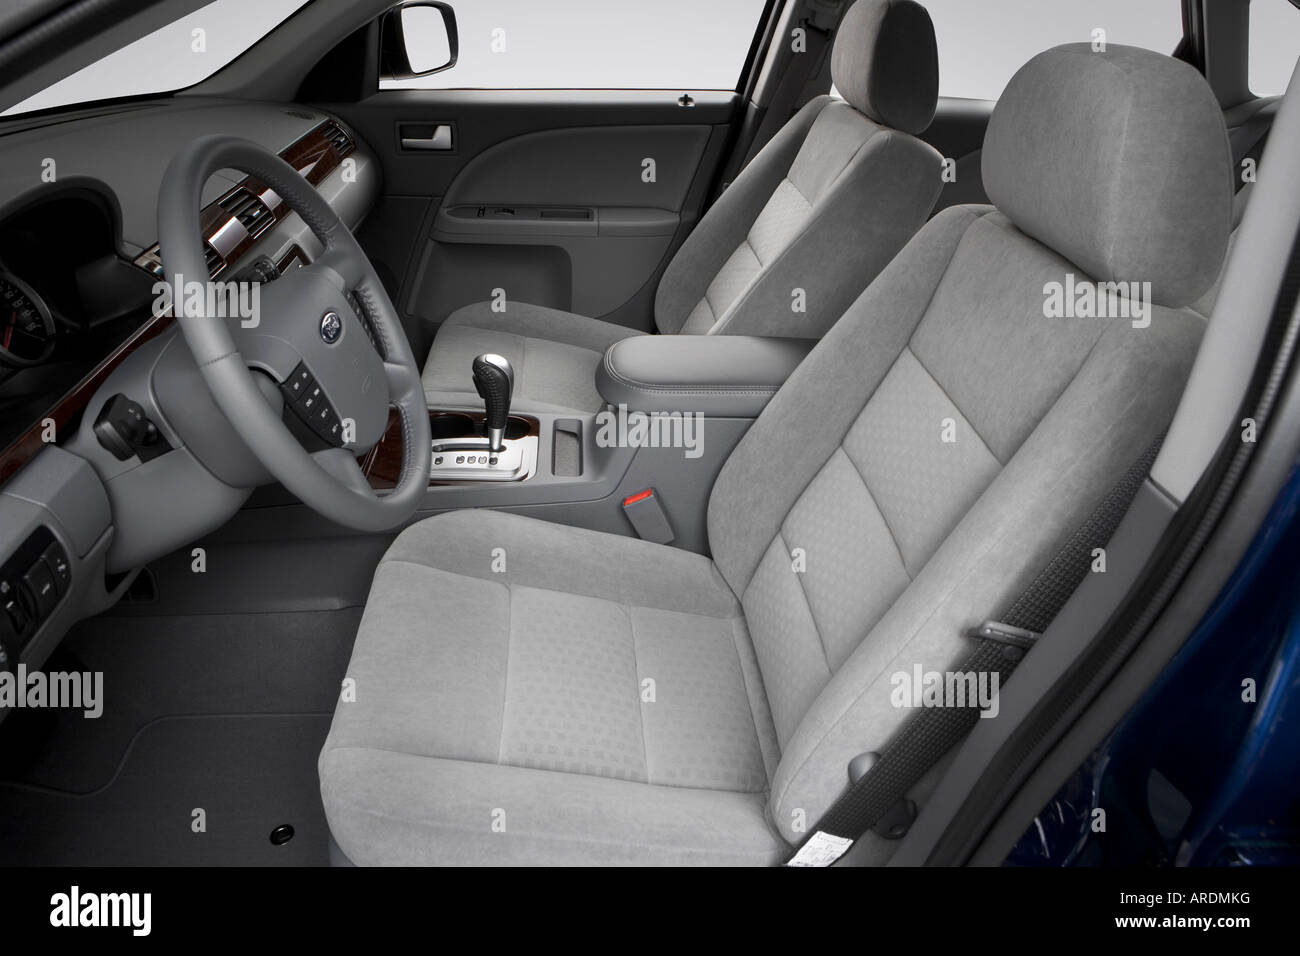 2007 ford five hundred sel in blue front seats